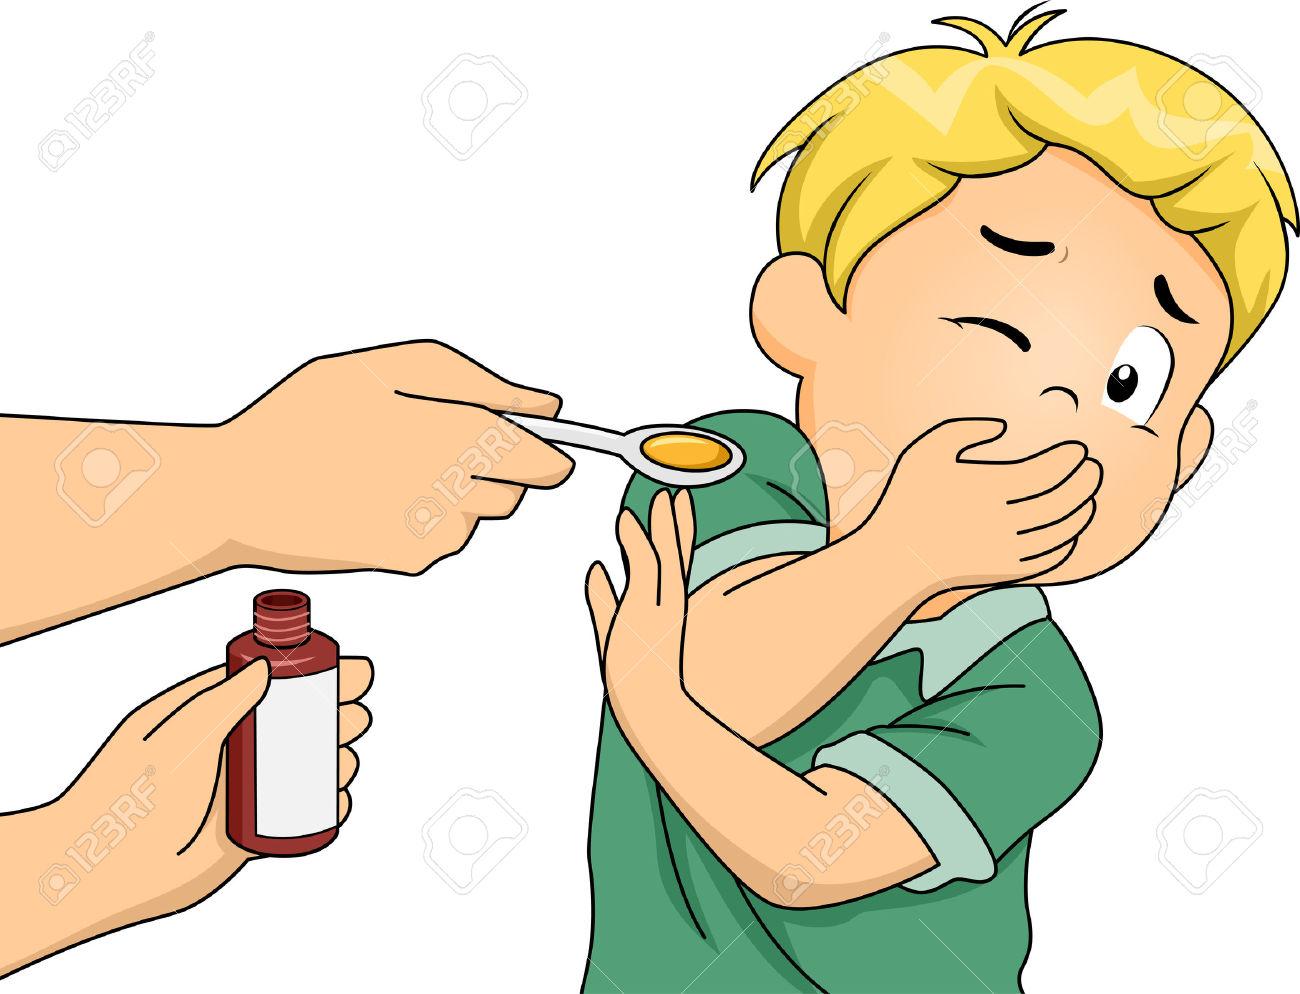 Pills clipart yellow Picture ClipartMe Medication Free Art